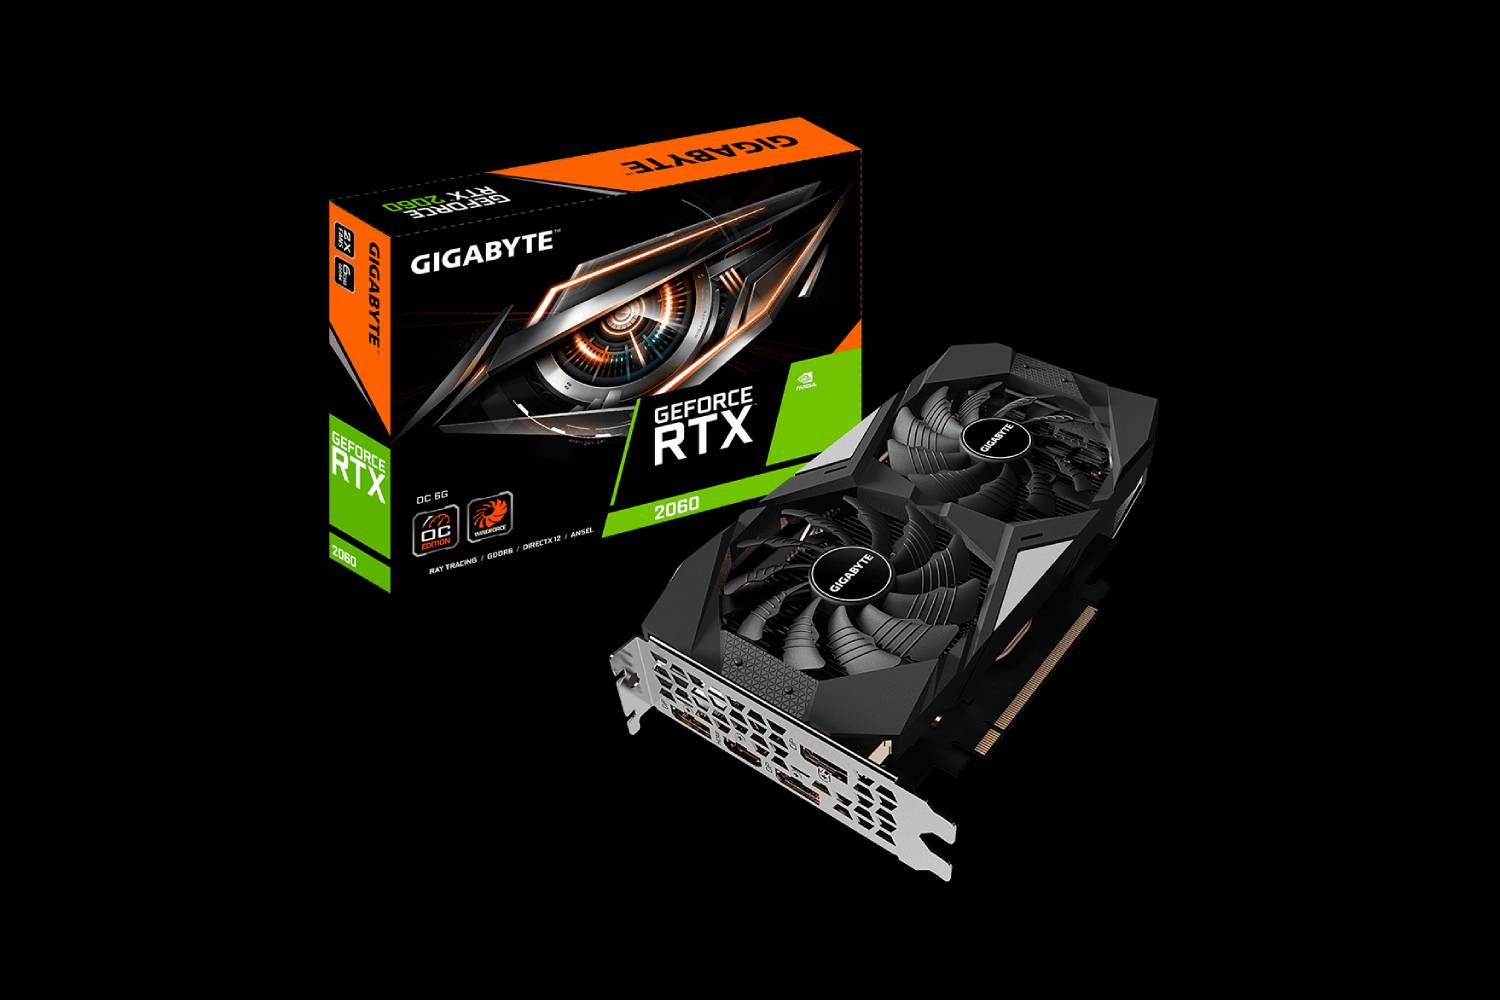 Gigabyte GeForce RTX 2060 OC 6G Graphics Card